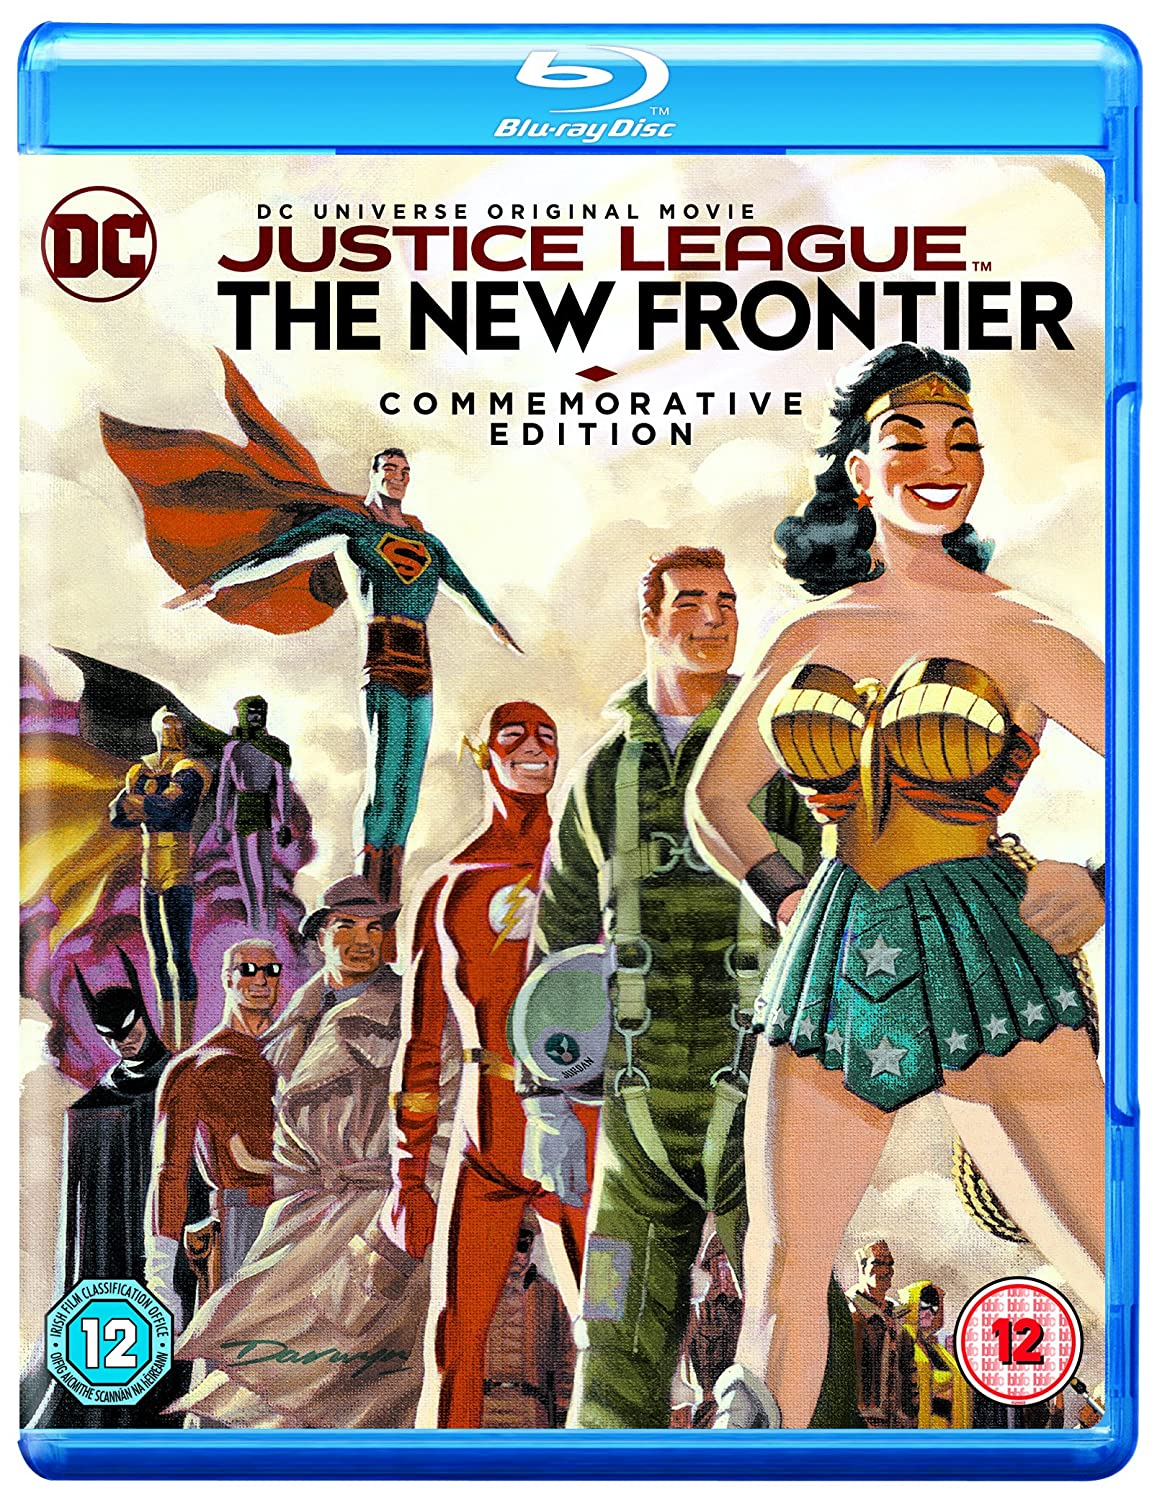 Justice League The New Frontier Commemorative Edition [blu-ray] [2017] [region Free]